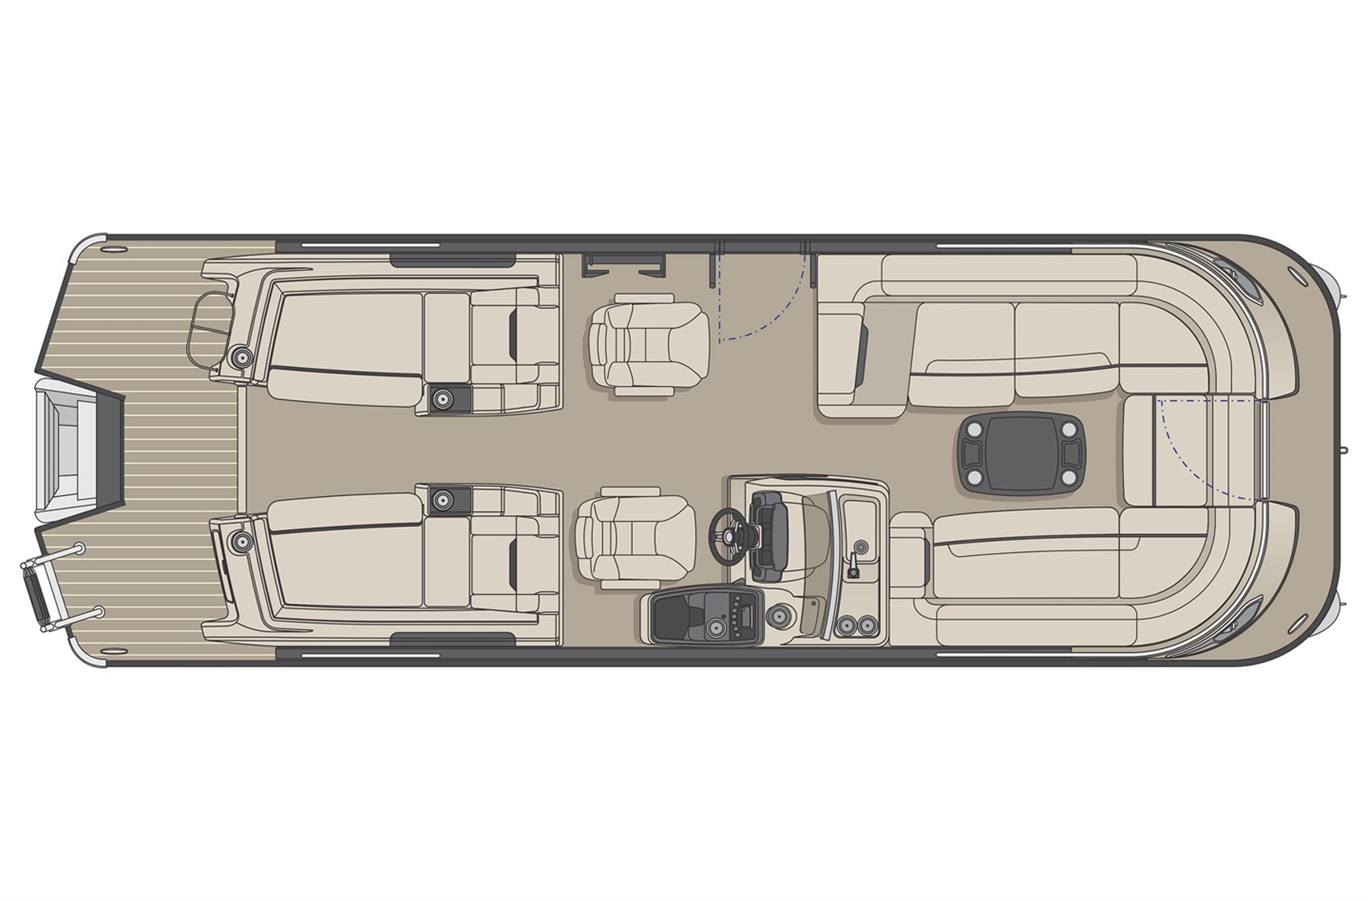 hight resolution of 2019 princecraft vogue 25 xt for sale in carleton place on john s marina 613 253 2628